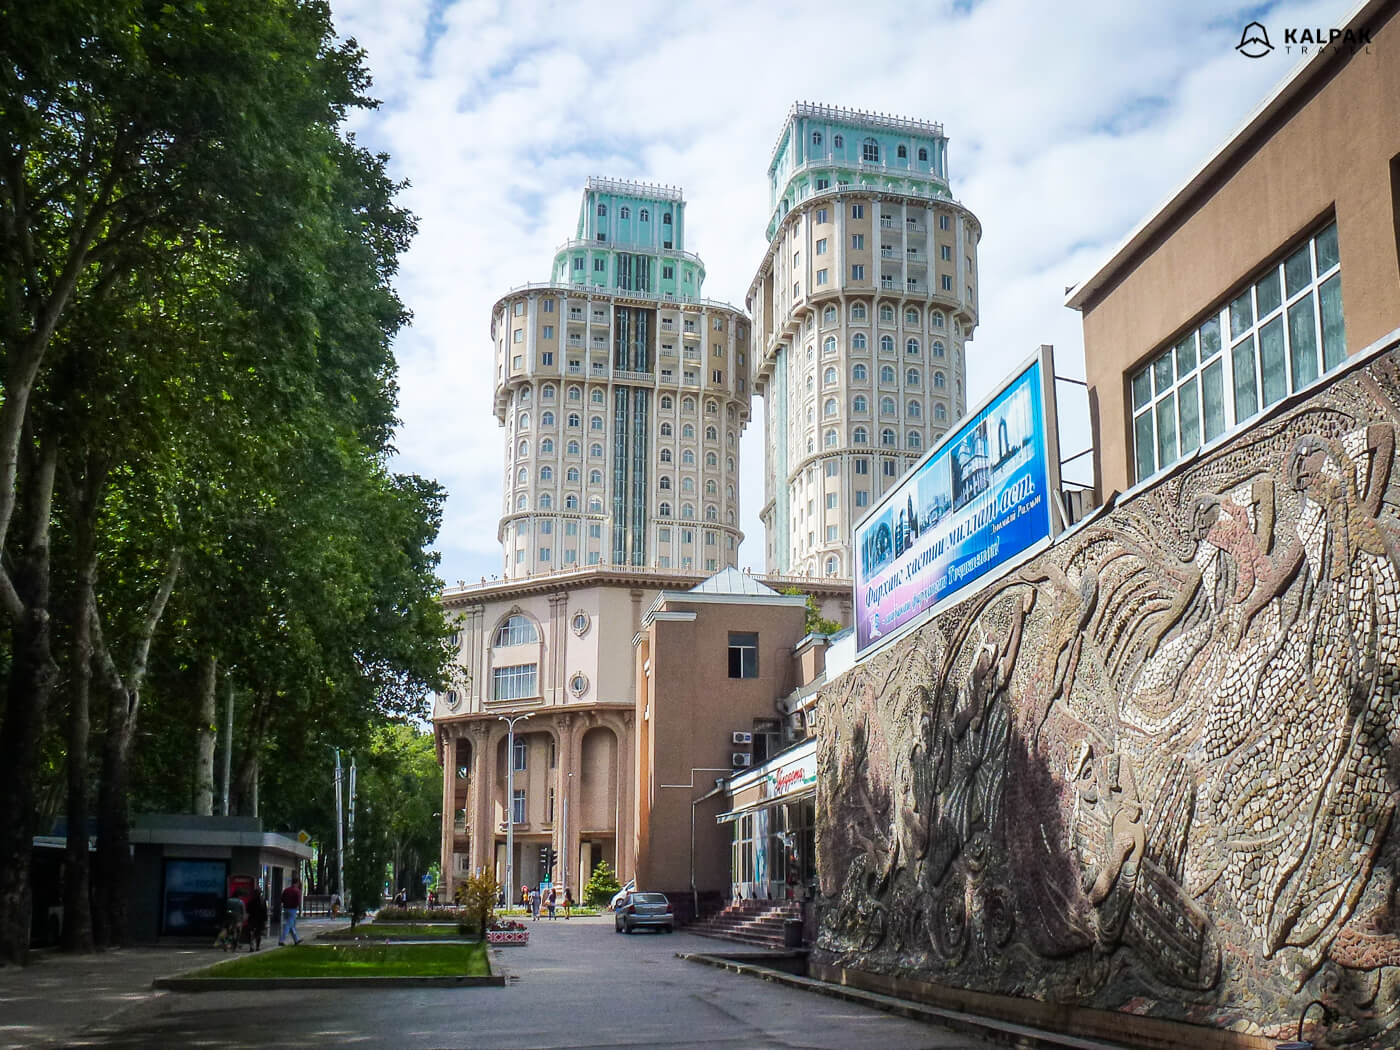 Dushanbe Plaza or high twin buildings in Dushanbe